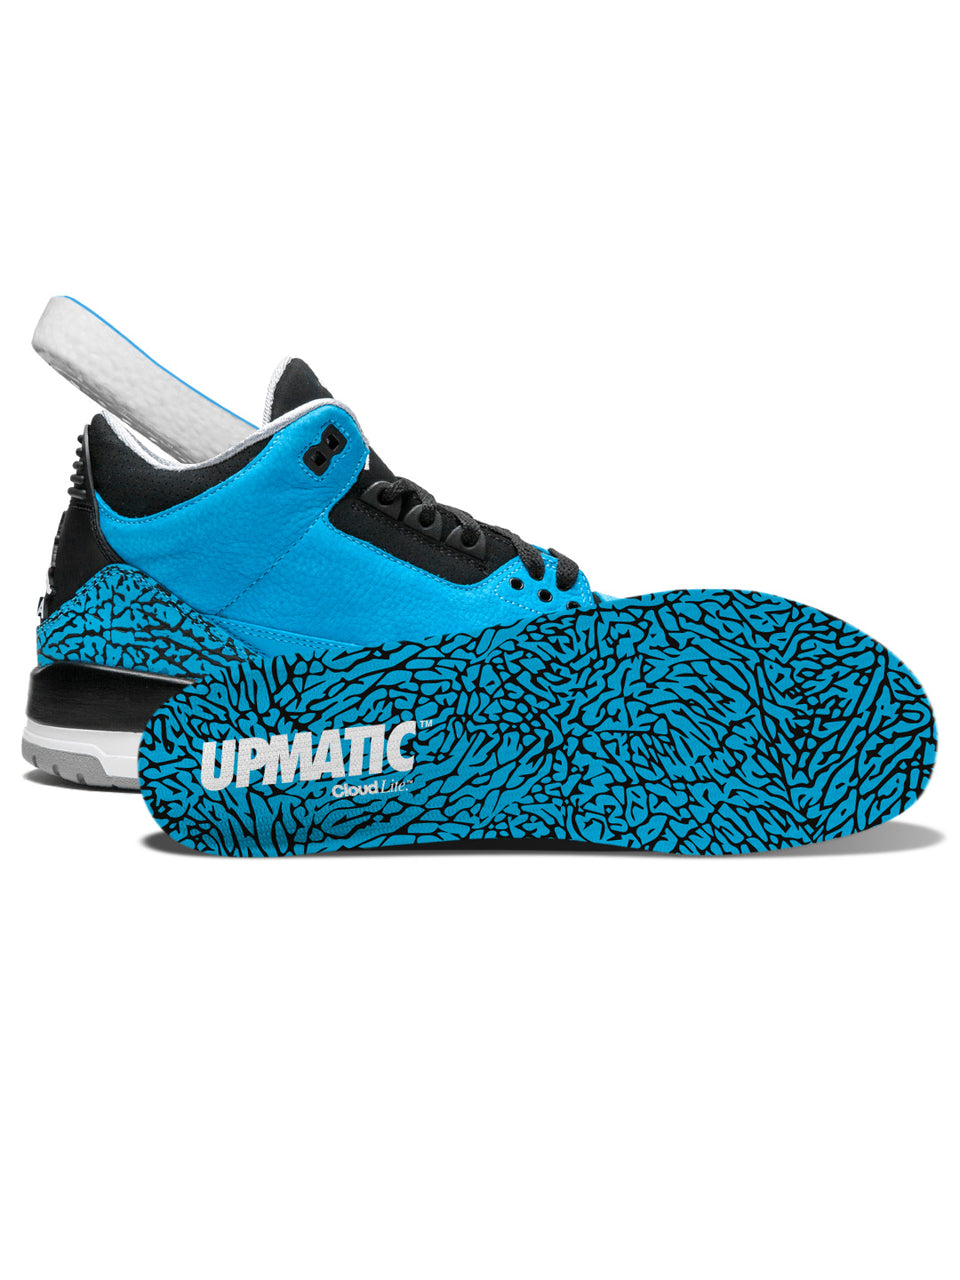 UPMATIC Cloudlite Supercharged Insoles 1988 Blue Elephant Limited Edition